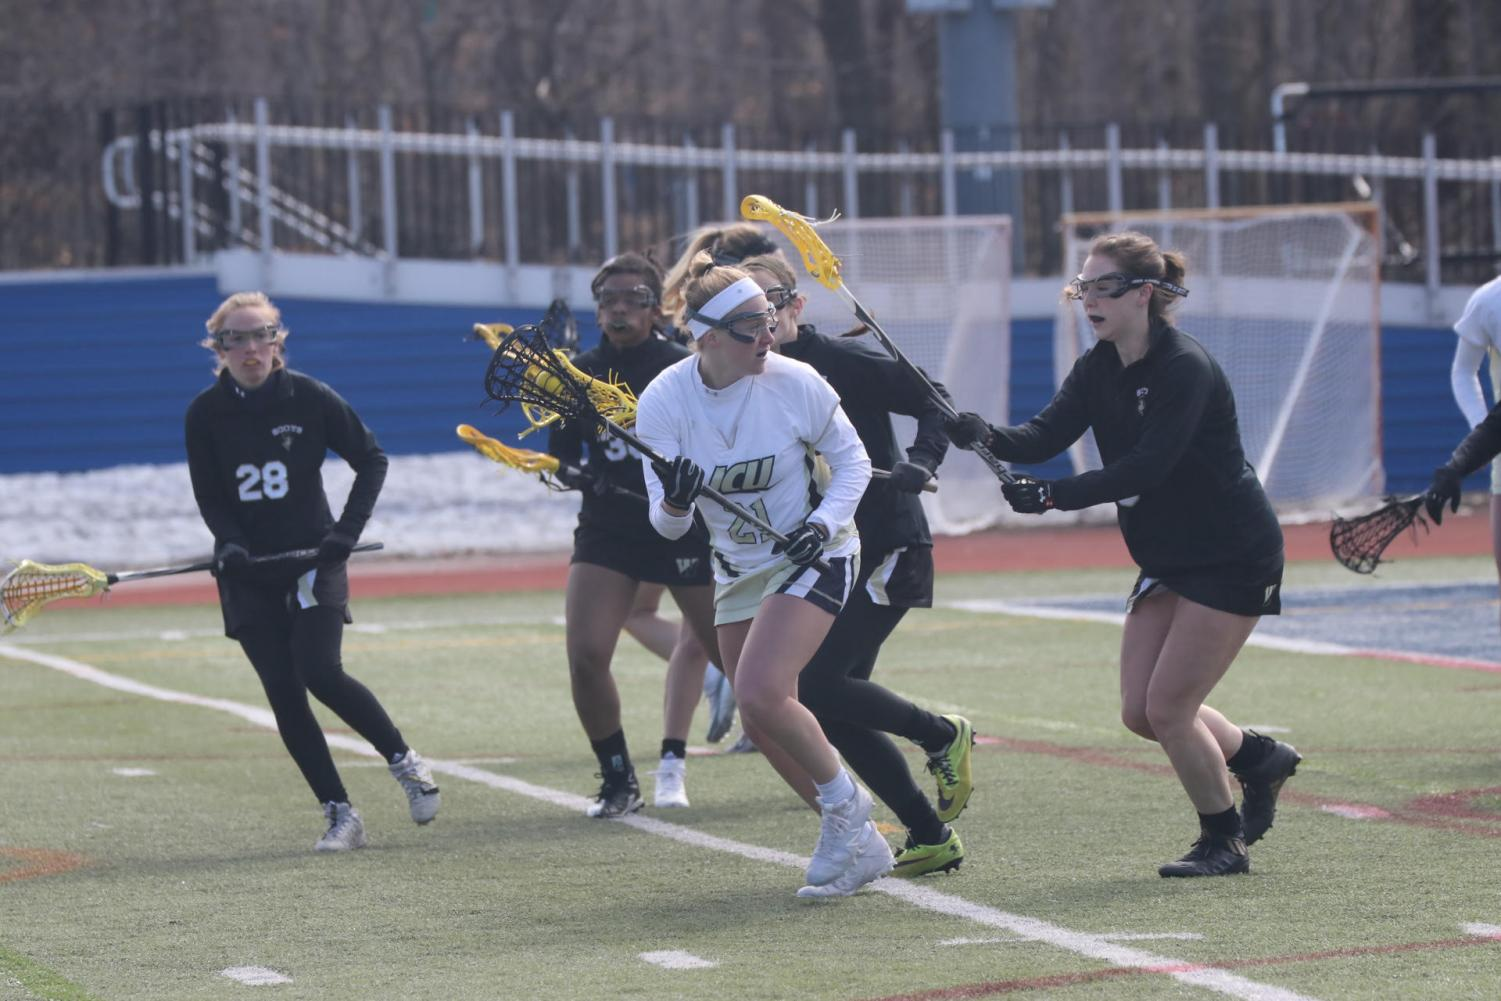 Sophomore midfielder Sophia Brandimarte looks to evade a flock of Wooster defenders in a game on Saturday afternoon on March 16 at Don Shula Stadium.